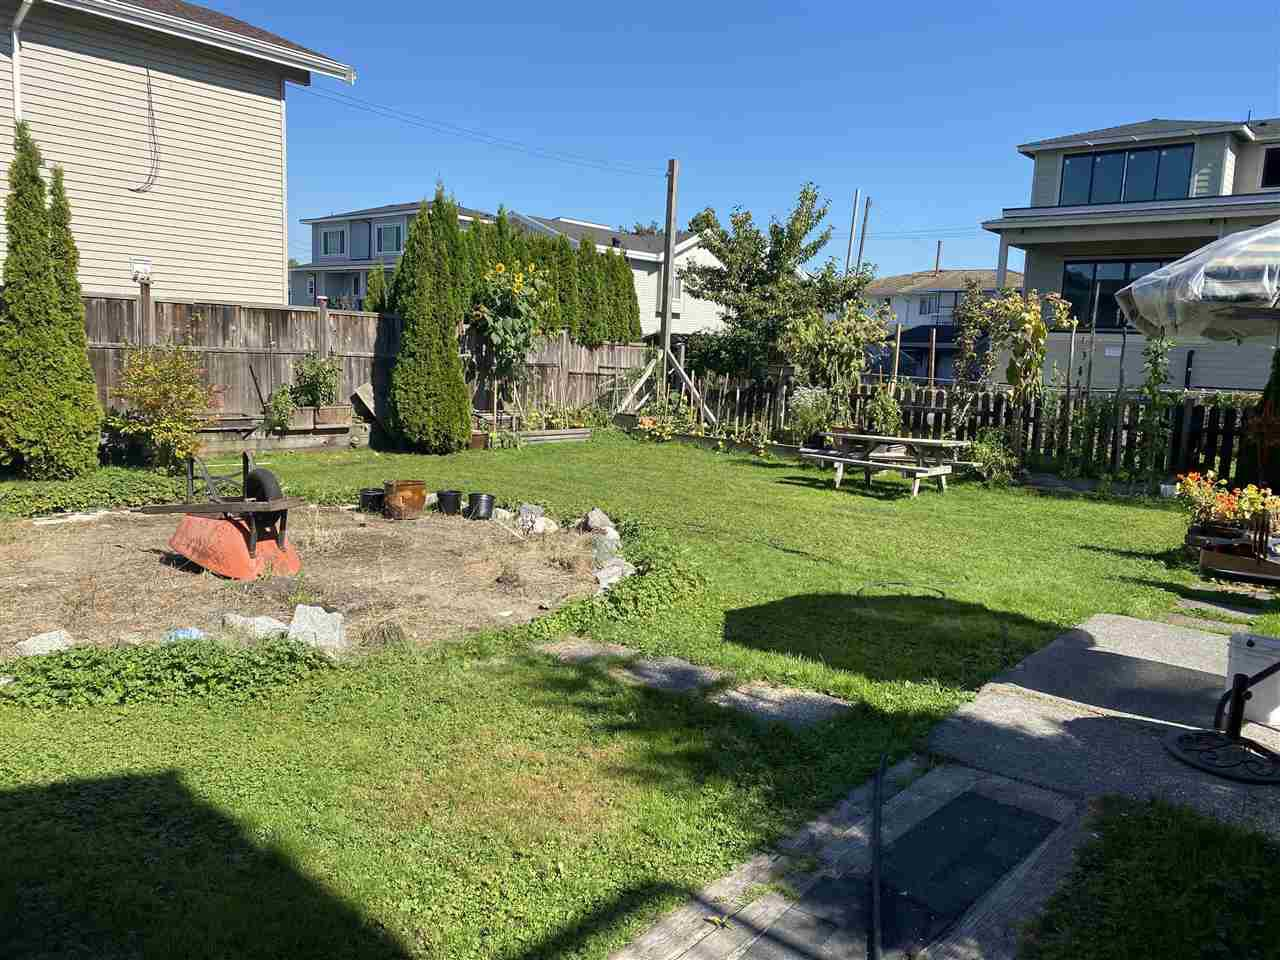 Main Photo: 317 WOOD Street in New Westminster: Queensborough House for sale : MLS®# R2496910